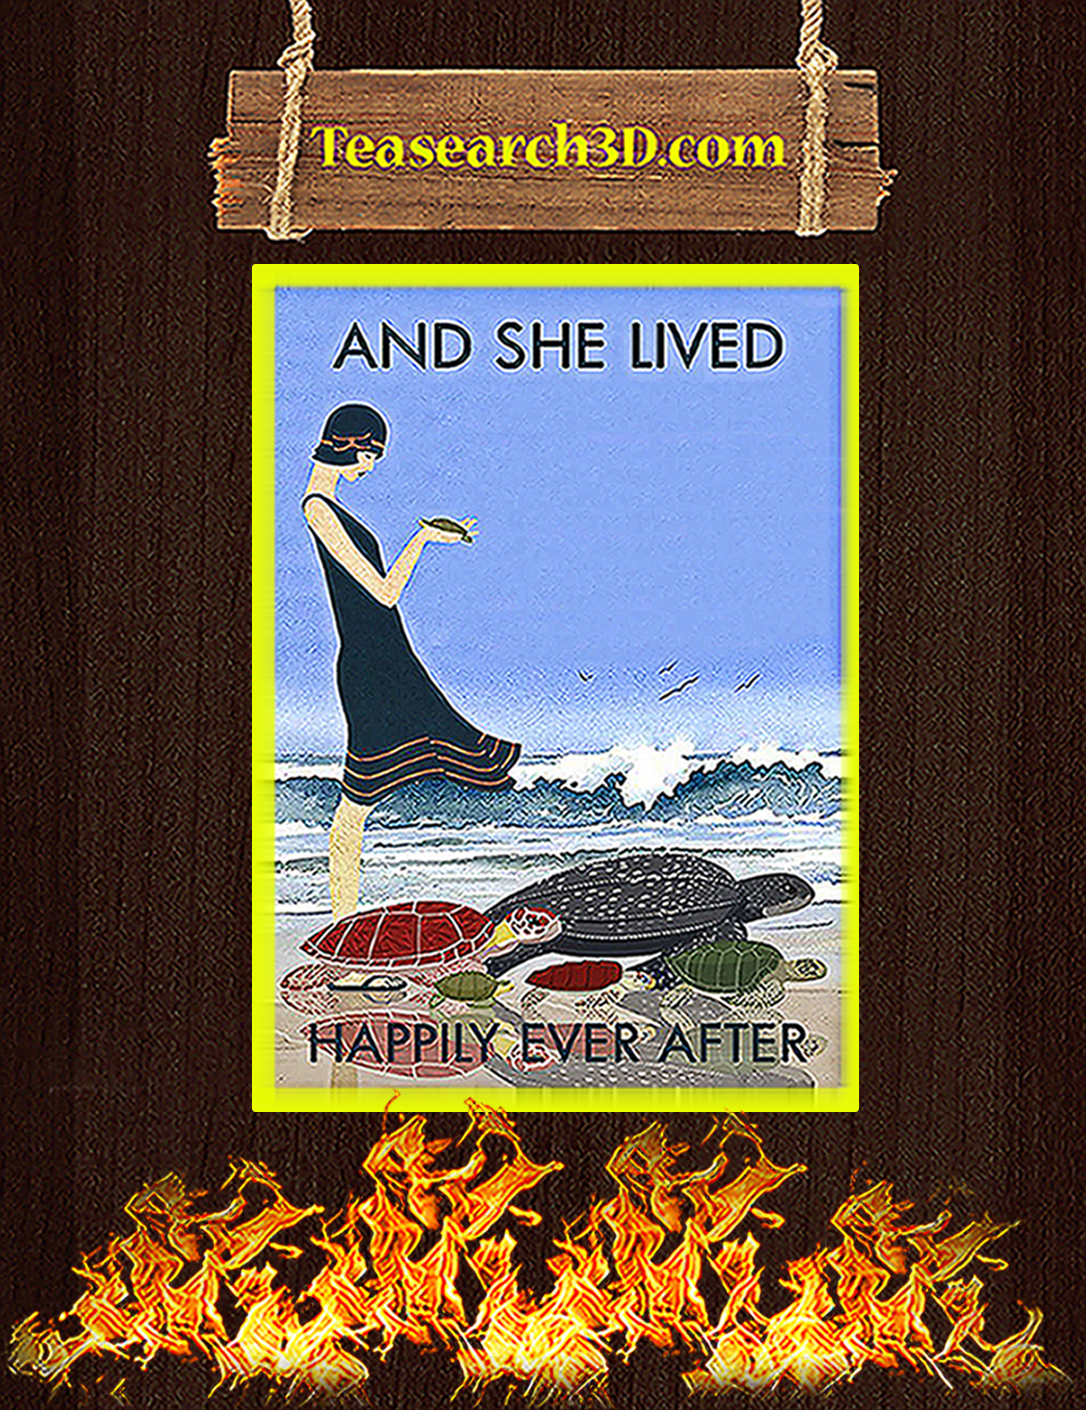 Beach and turtles and she lived happily ever after poster A2